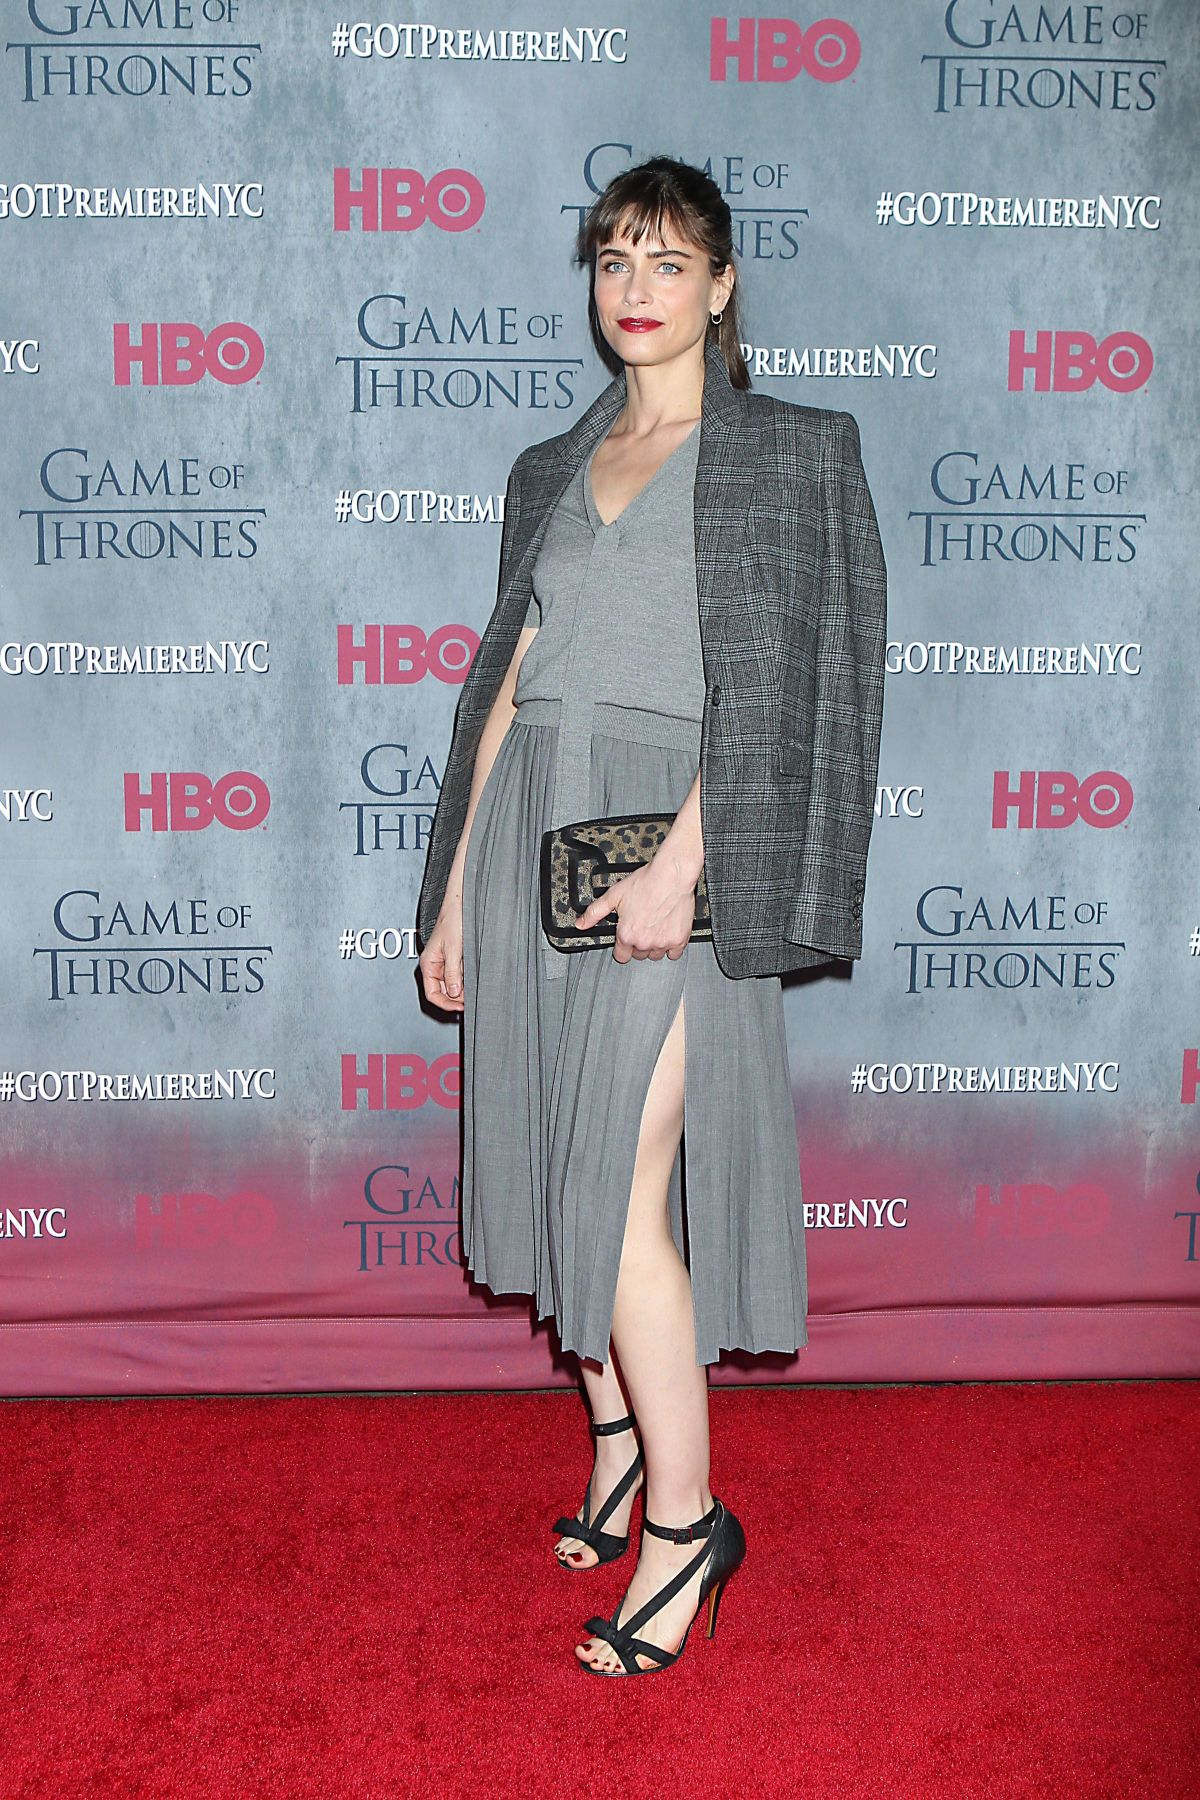 AMANDA PEET at Game of Thrones Fourth Season Premiere in New York